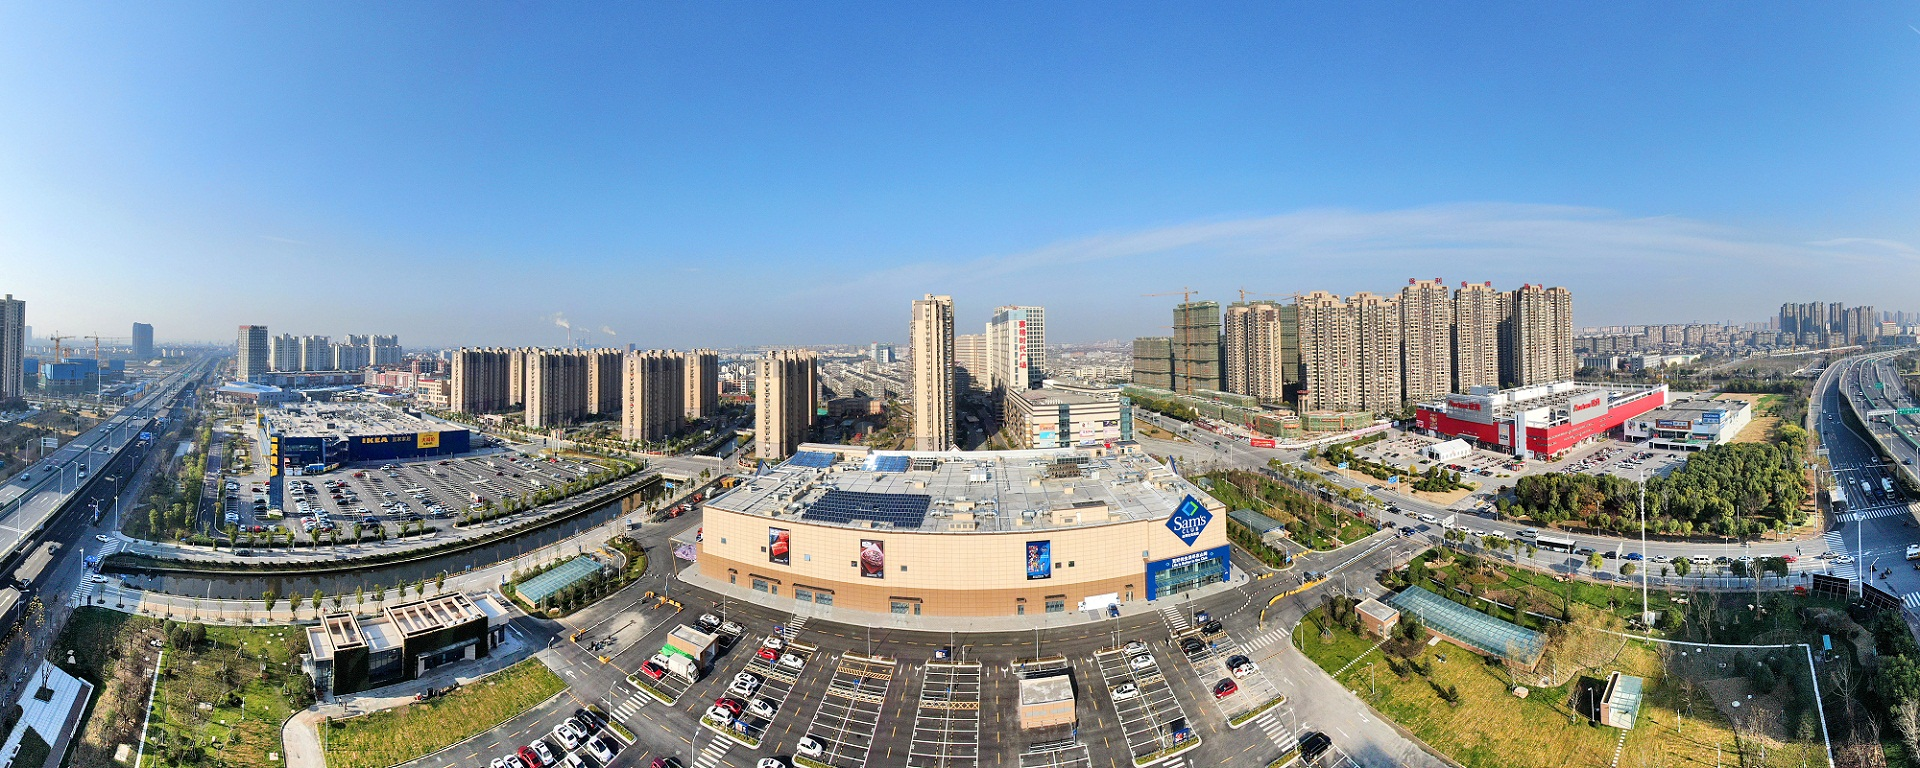 Nantong Gangzha Economic Development Zone of Jiangsu Province